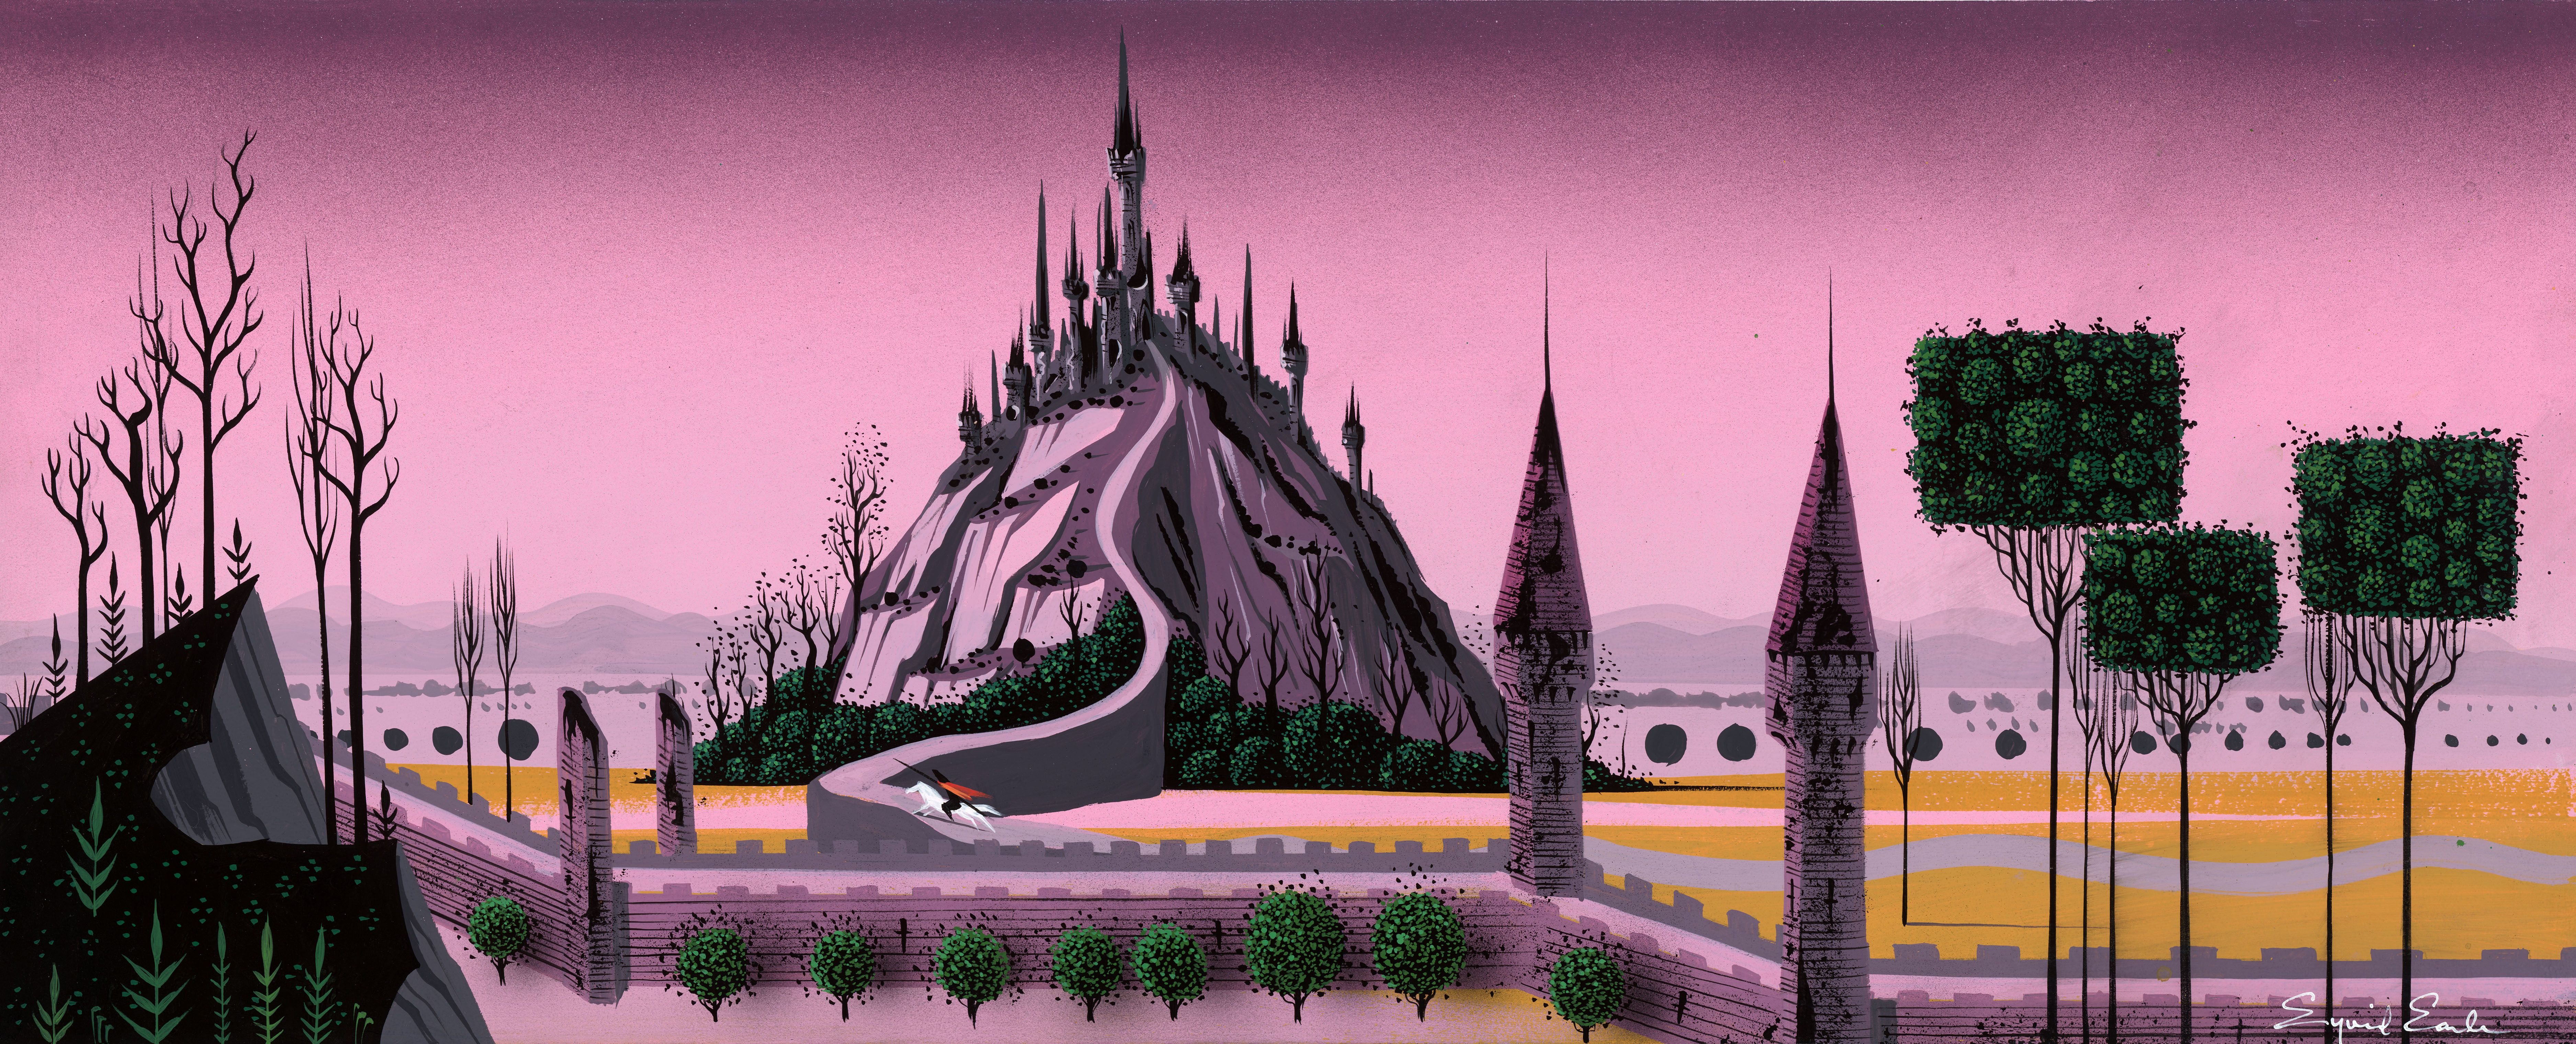 12 Things To Know About Disney's 'Sleeping Beauty' And The